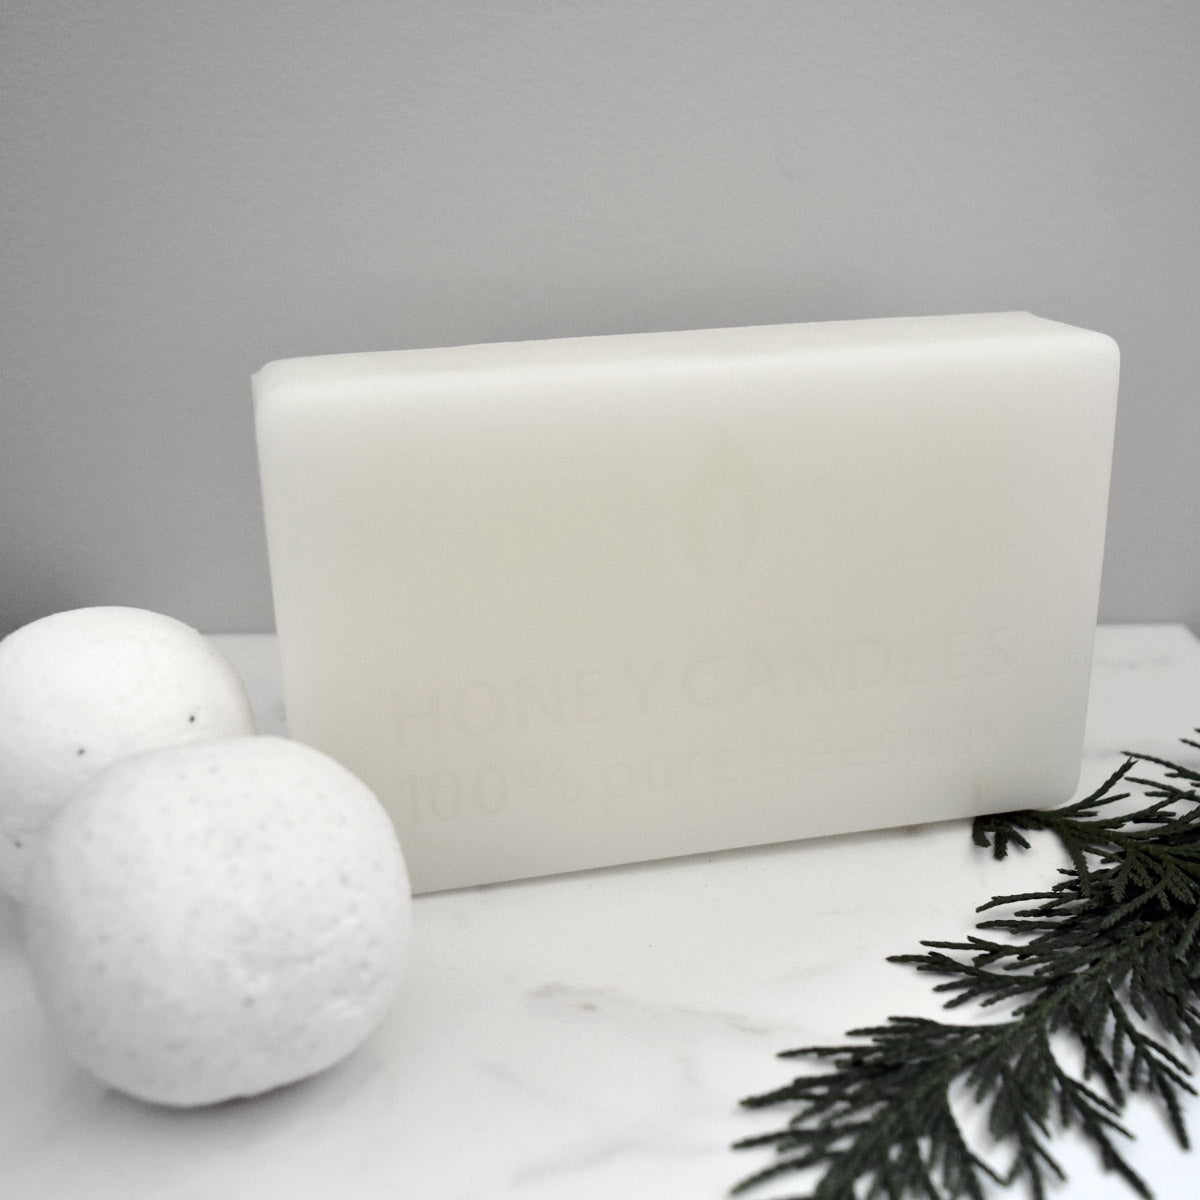 White pure beeswax block made from 100% pure North American beeswax